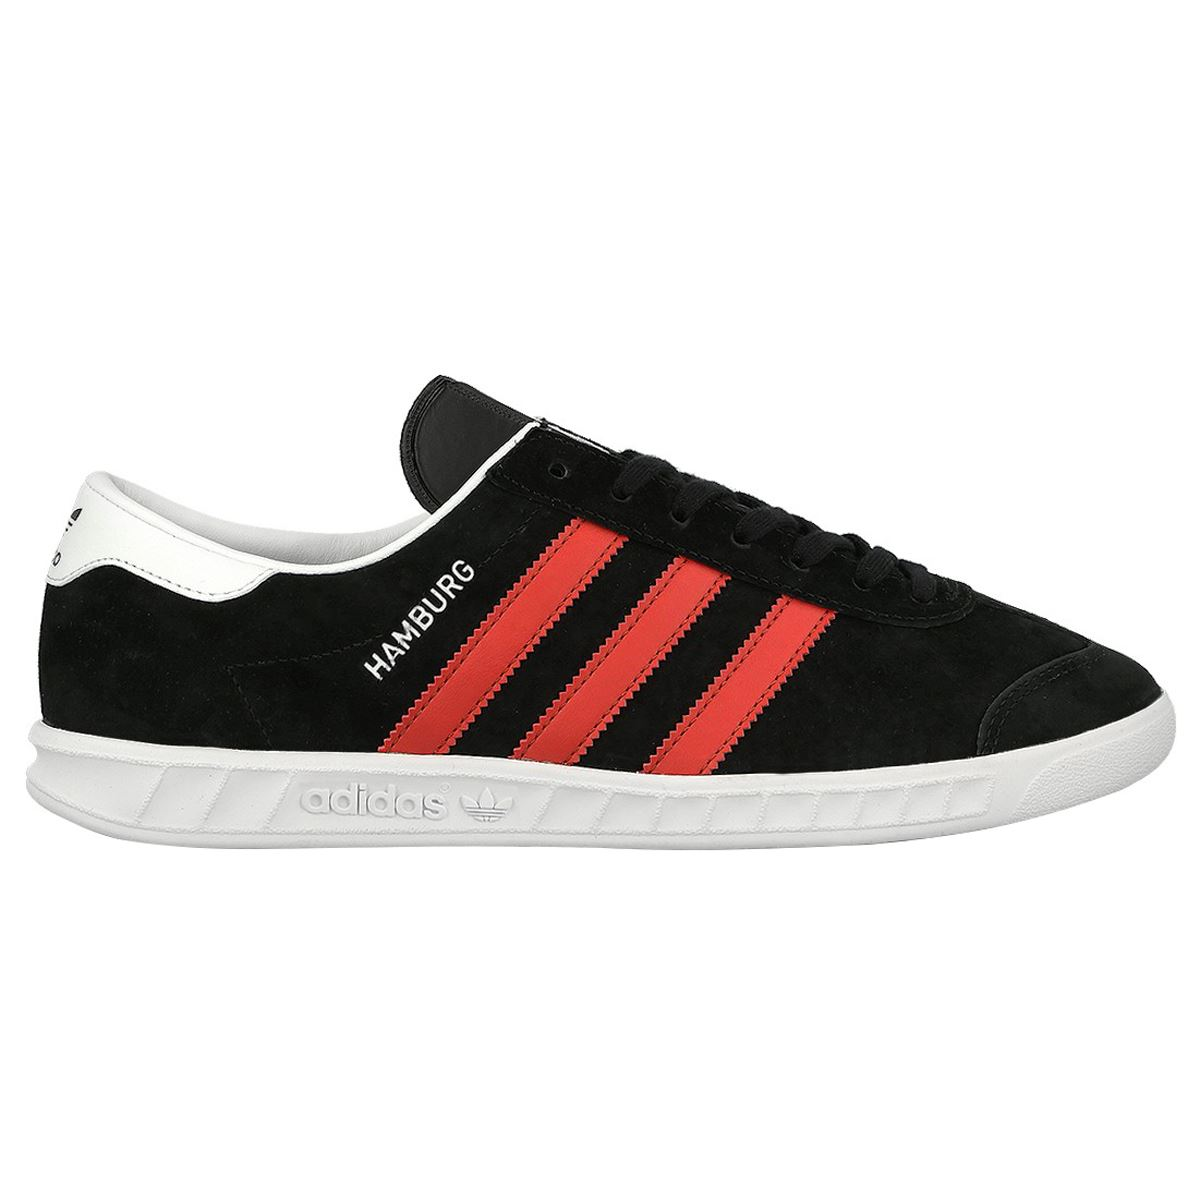 Adidas Hamburg Black Red Mens Suede Low-top Sneakers Trainers New  03e1c3233f48